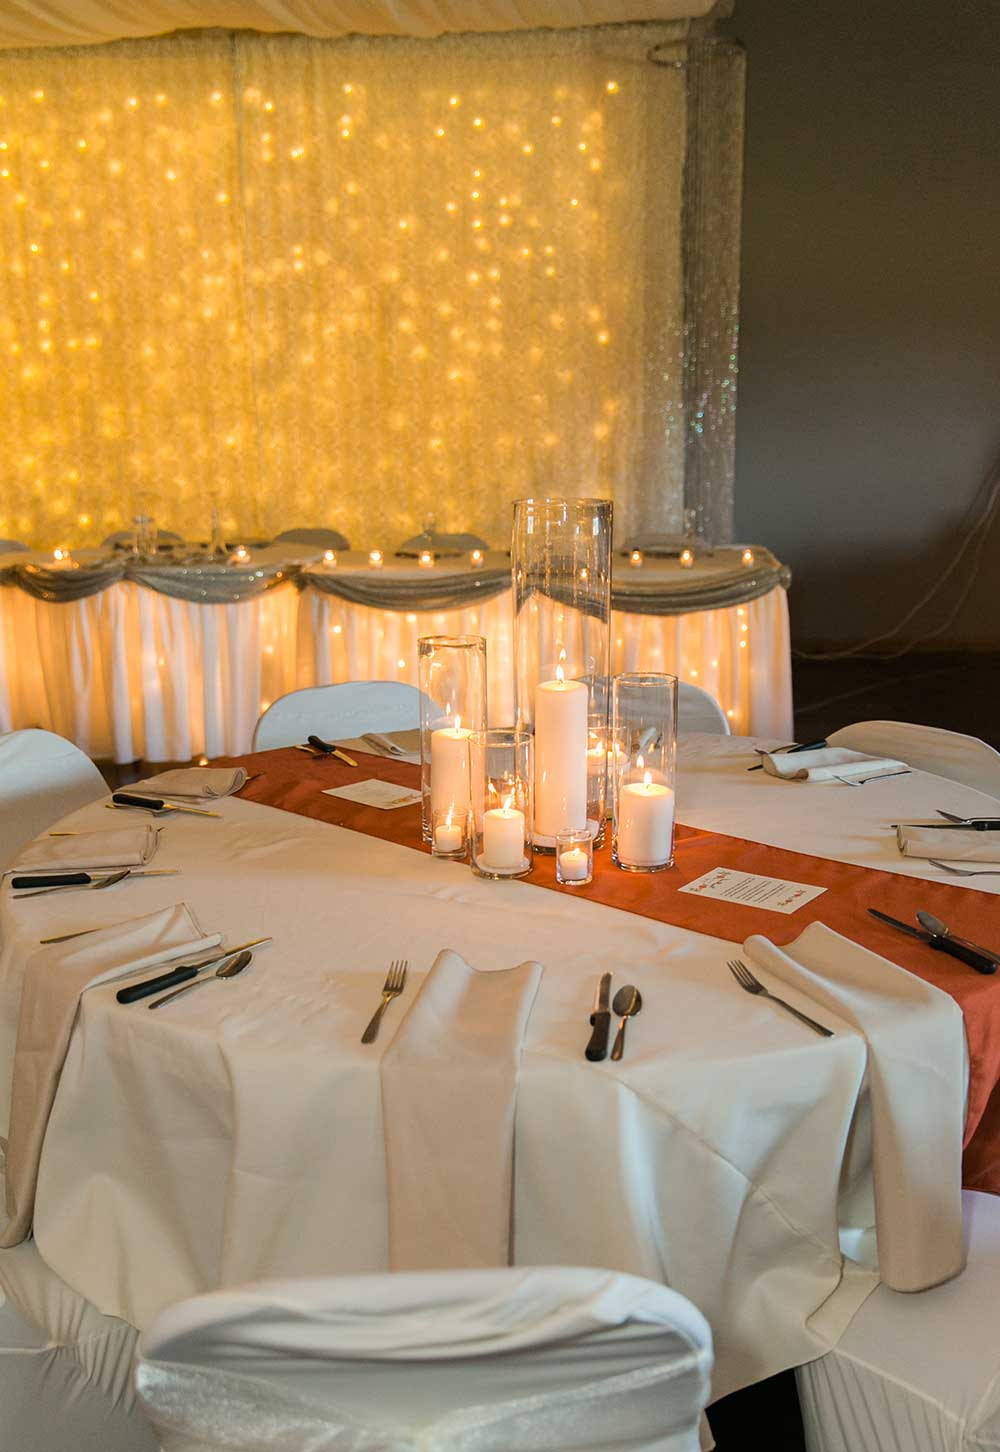 Add Your Business & Traditional Wedding at The Missouri Military Academy Church